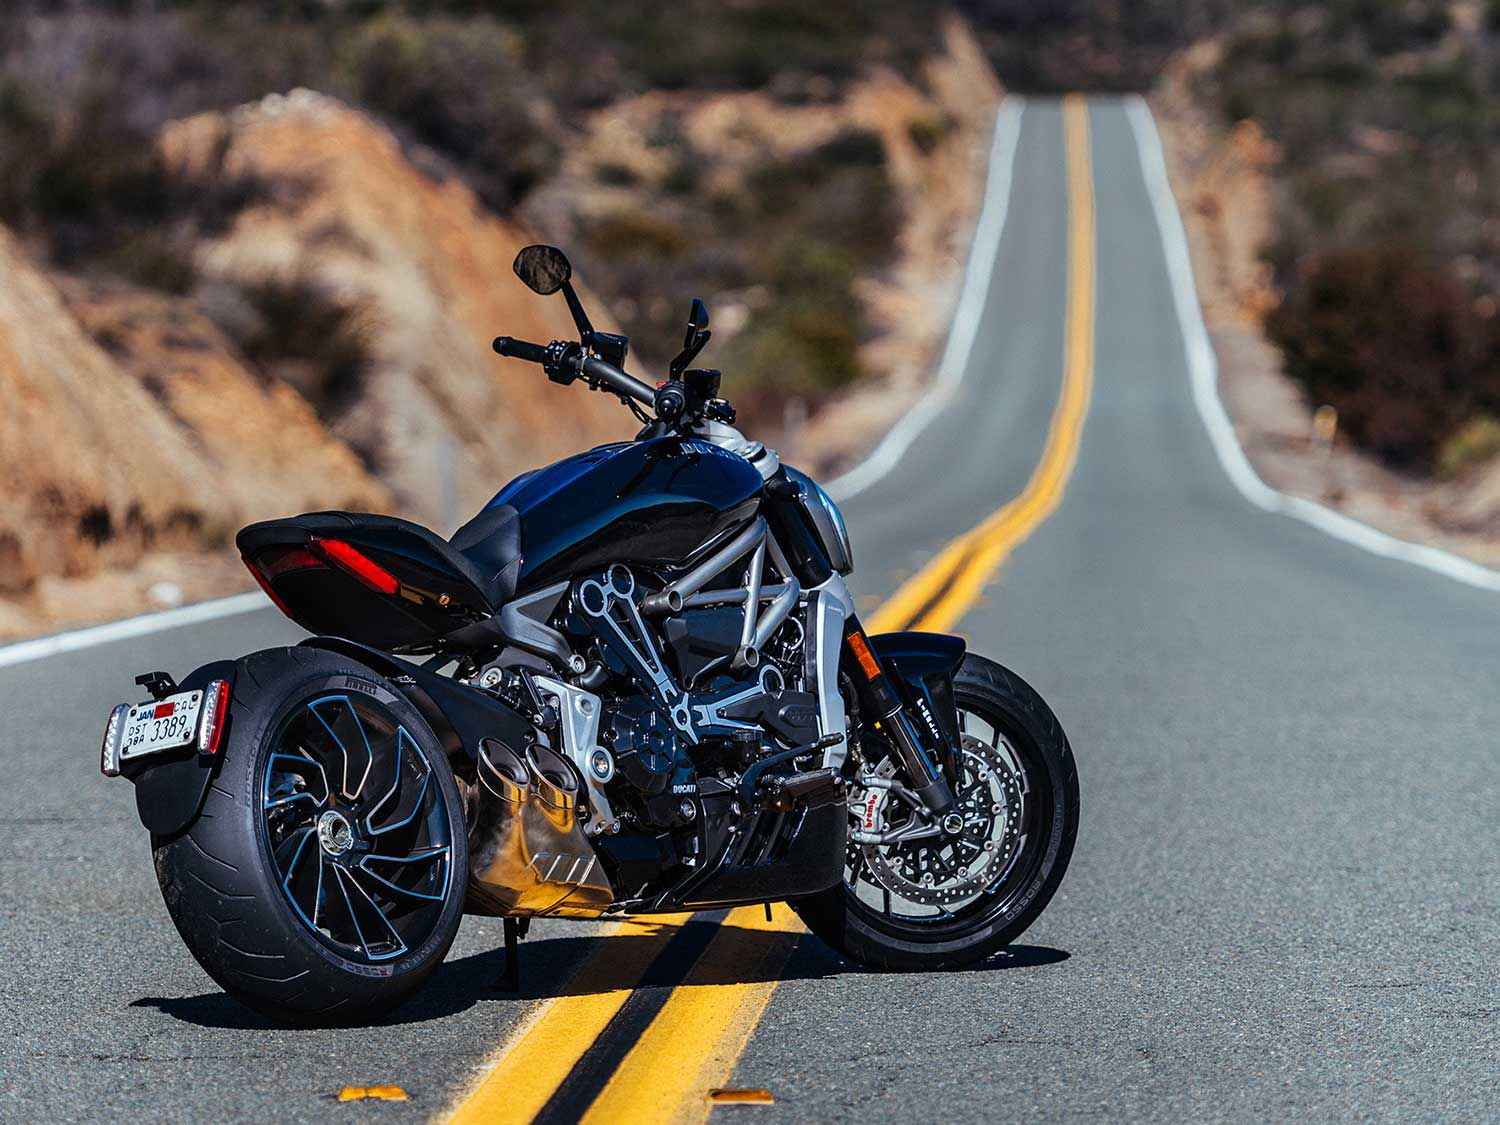 The XDiavel expanded Ducati's cruiser offerings when it debuted in 2016.